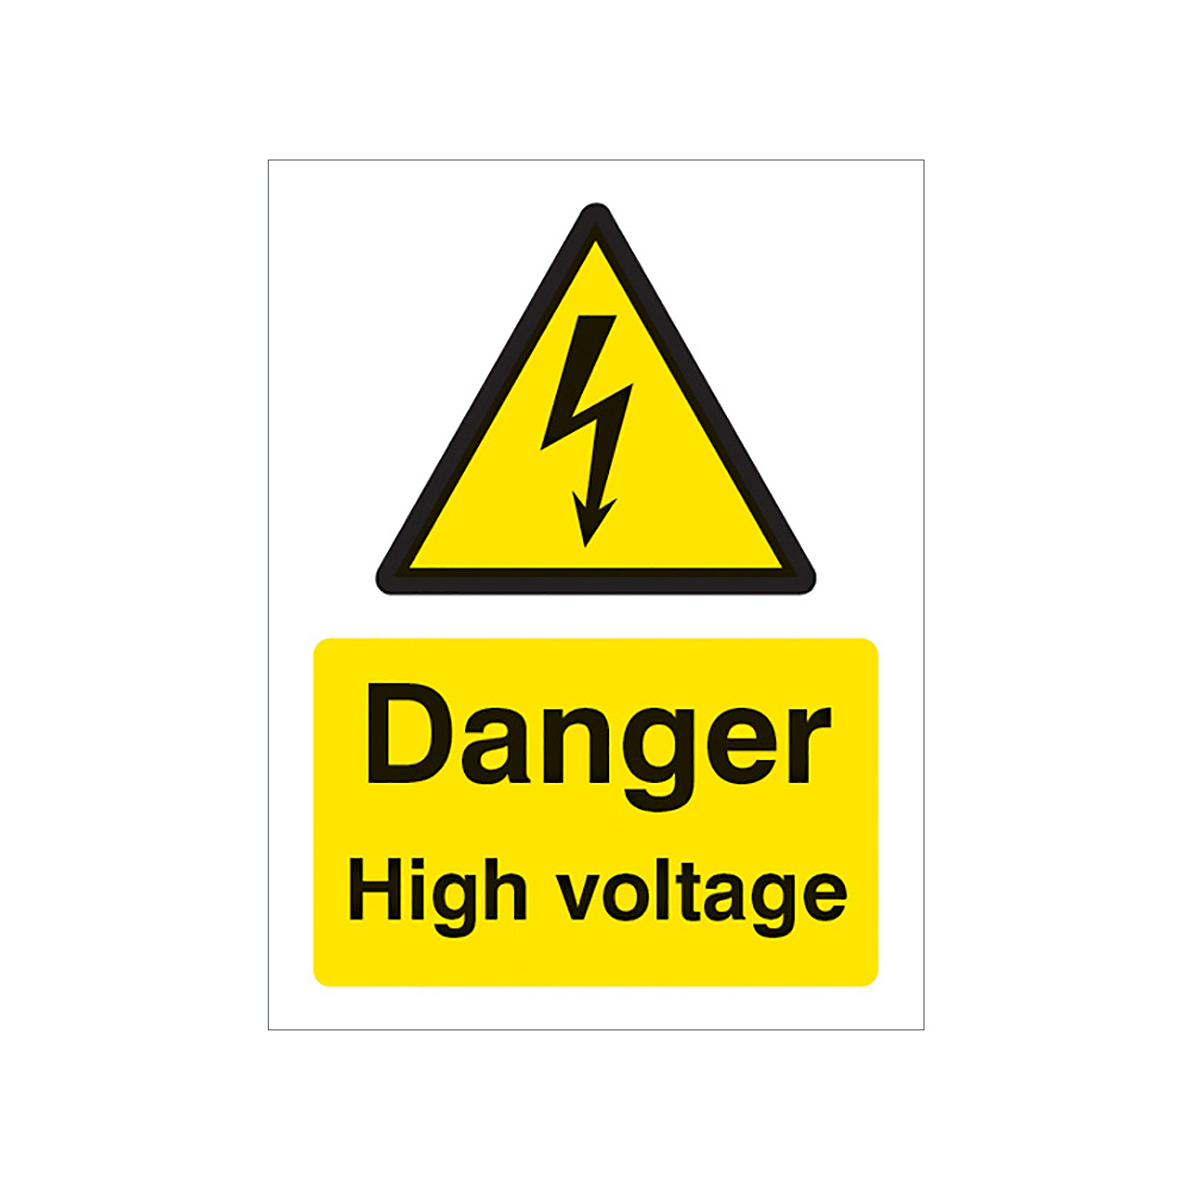 High Danger Voltage Sign